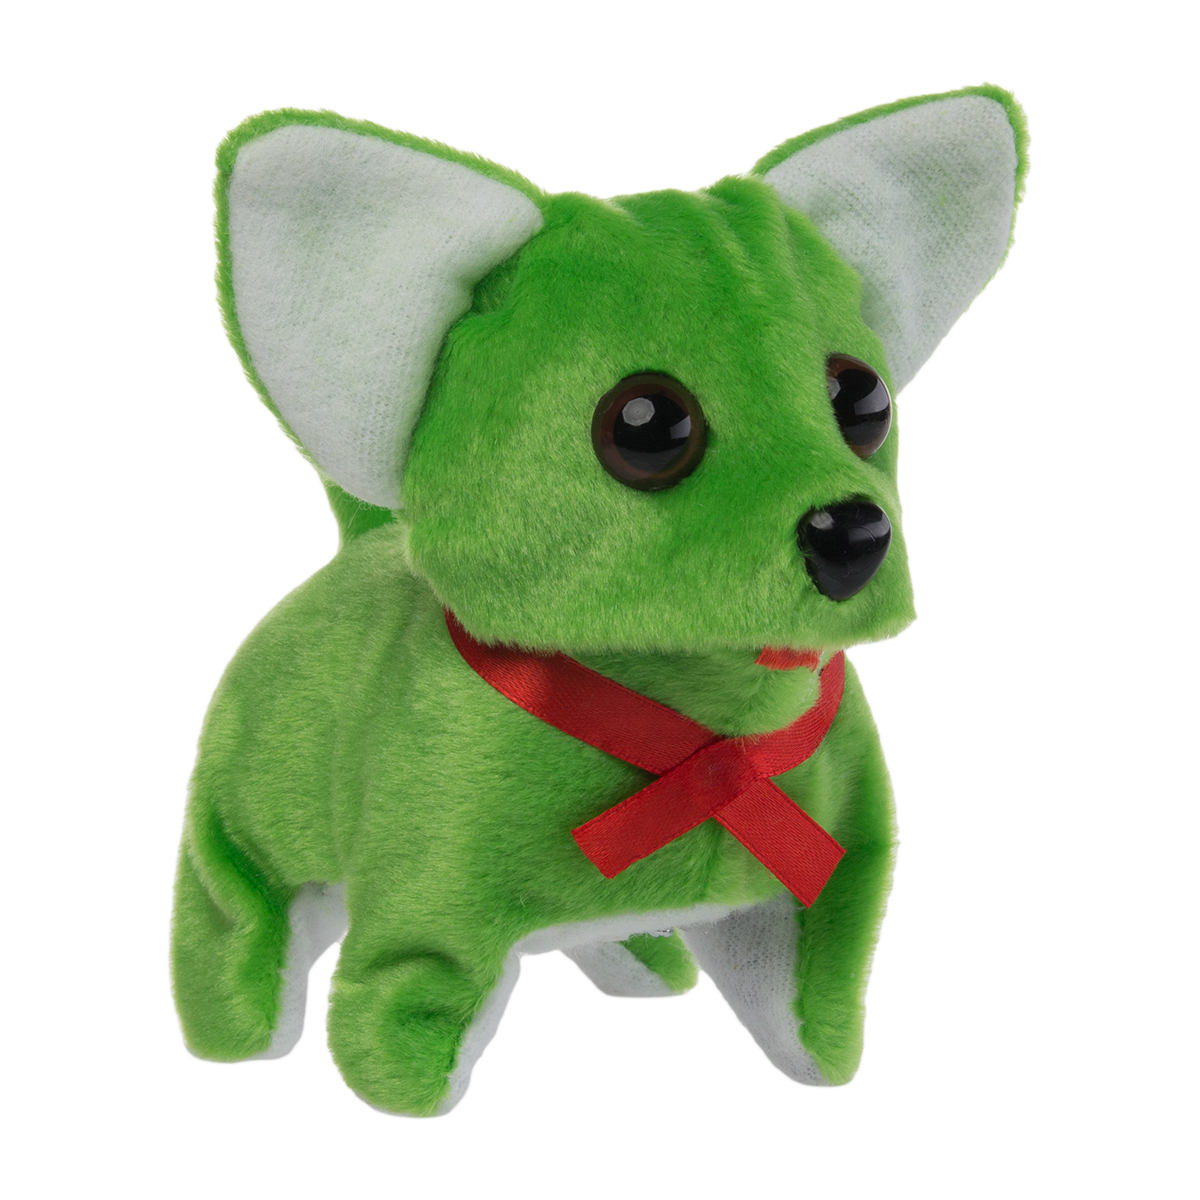 Animatronic Walking Barking Toy Dog Kids Battery Operated Chihuahua Wagging Tail